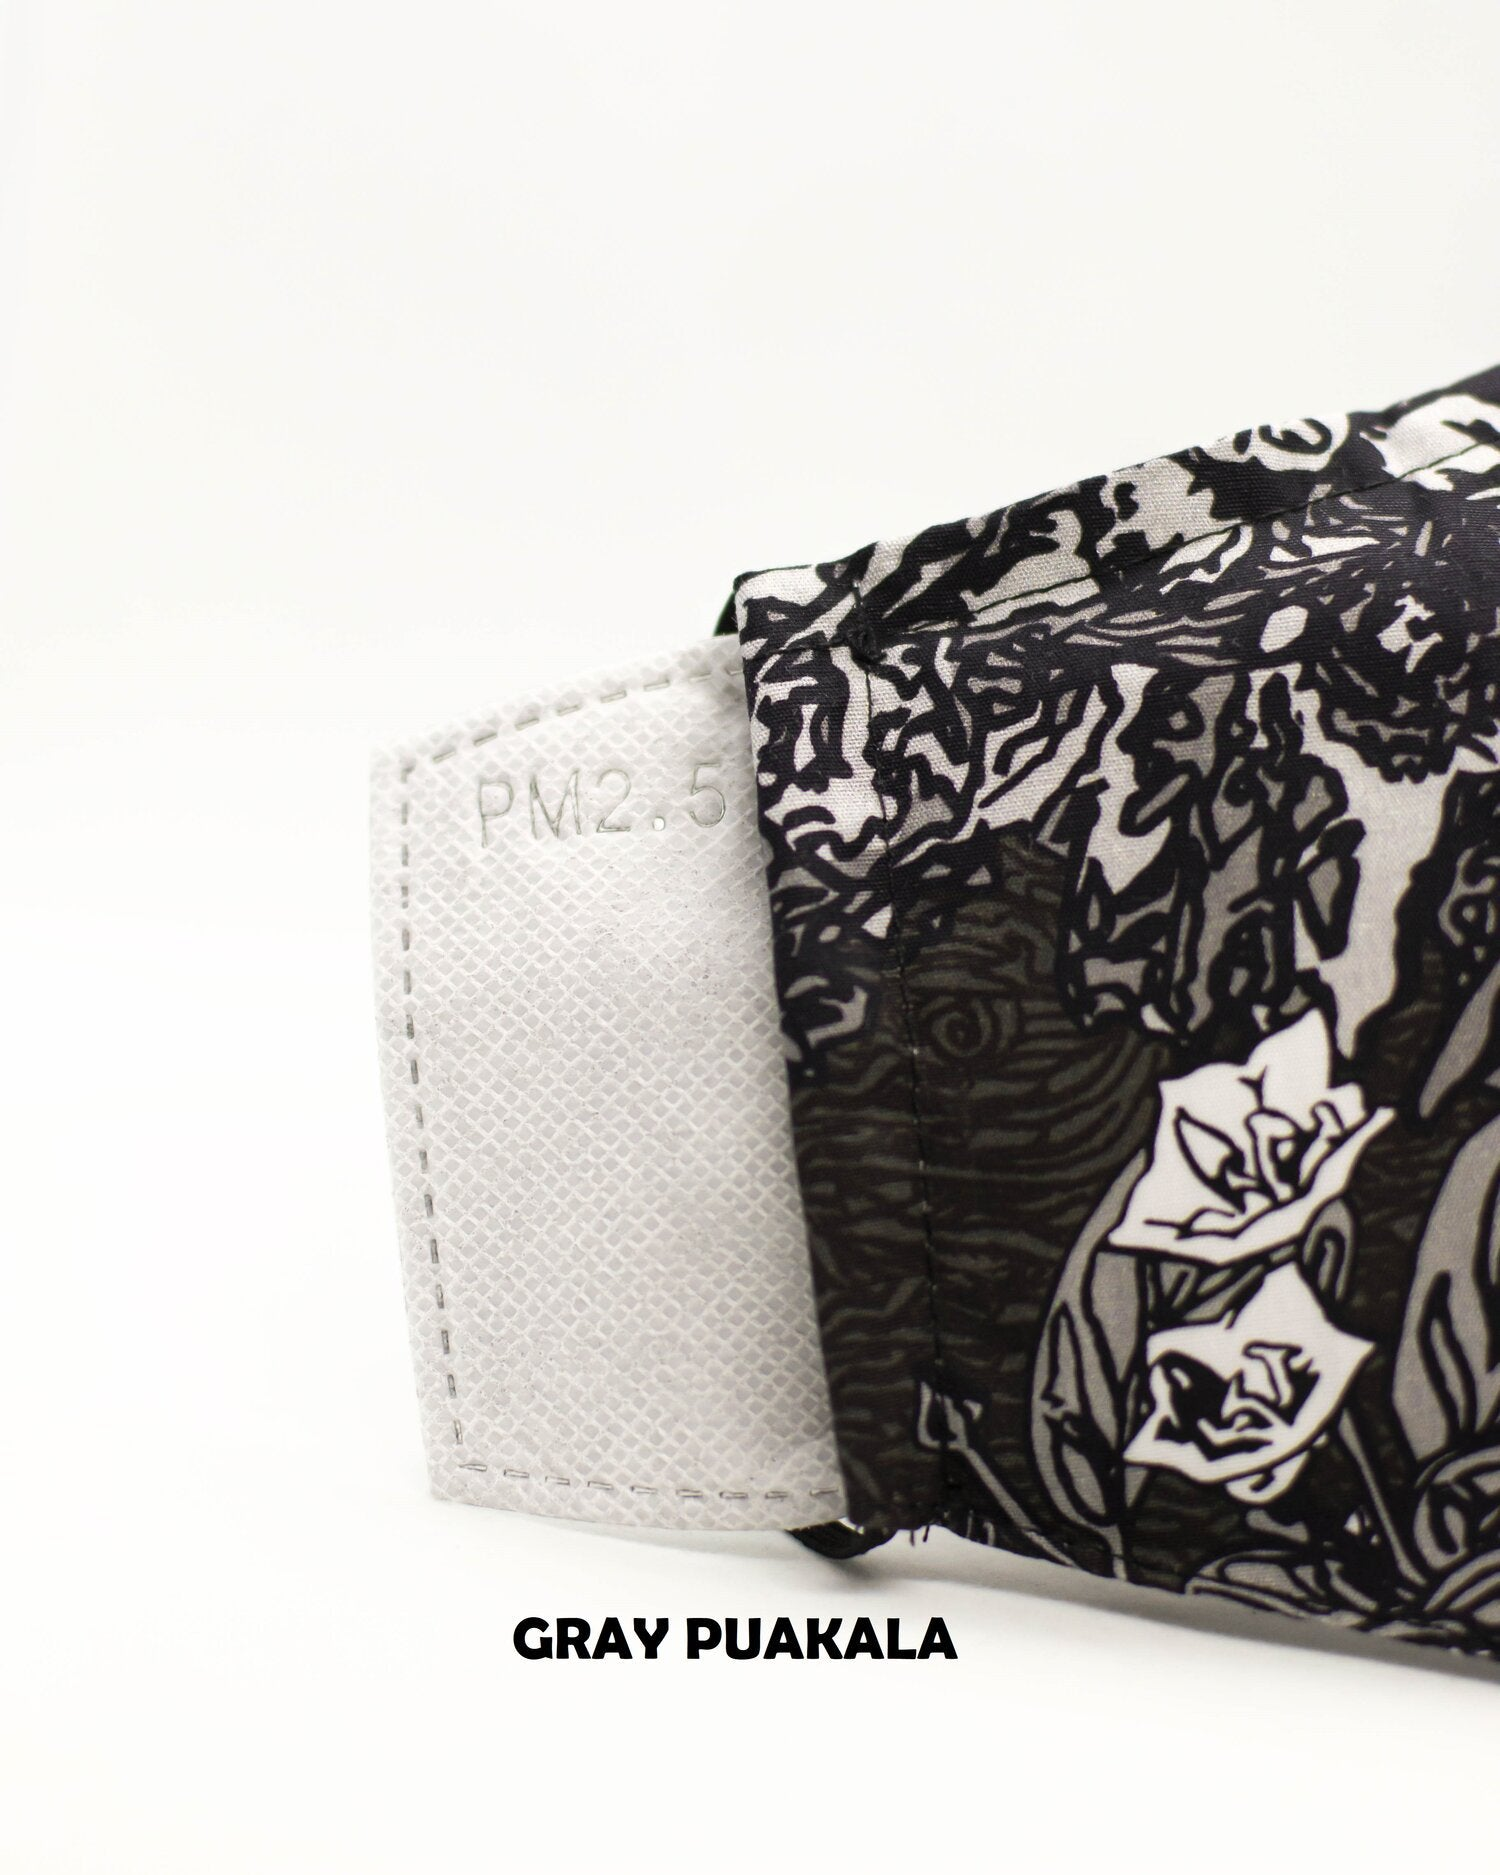 Puakala Gray Face Mask